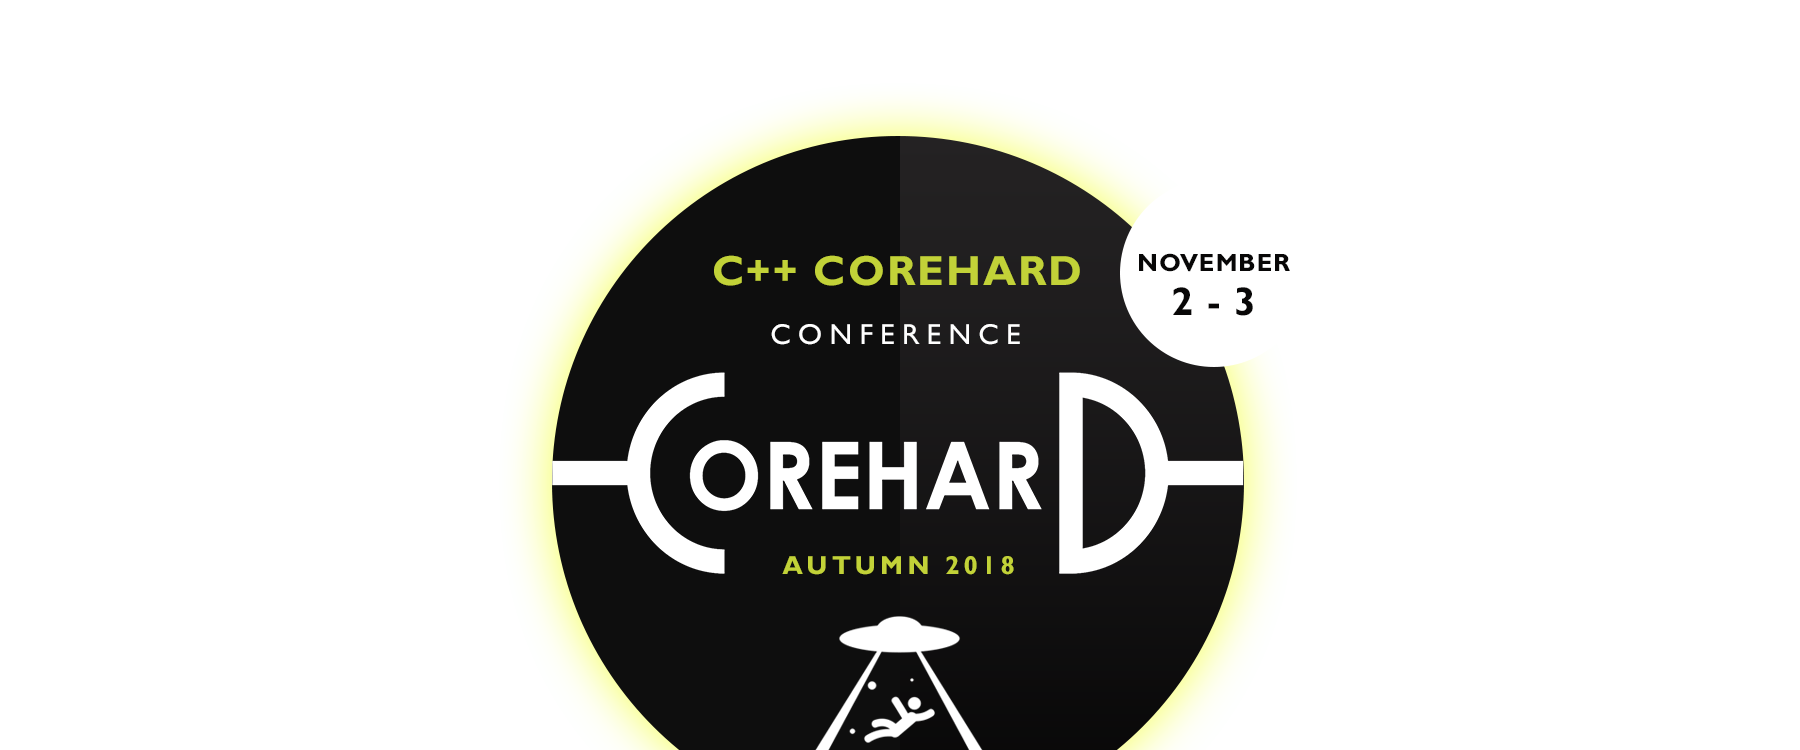 C++ CoreHard Autumn 2018